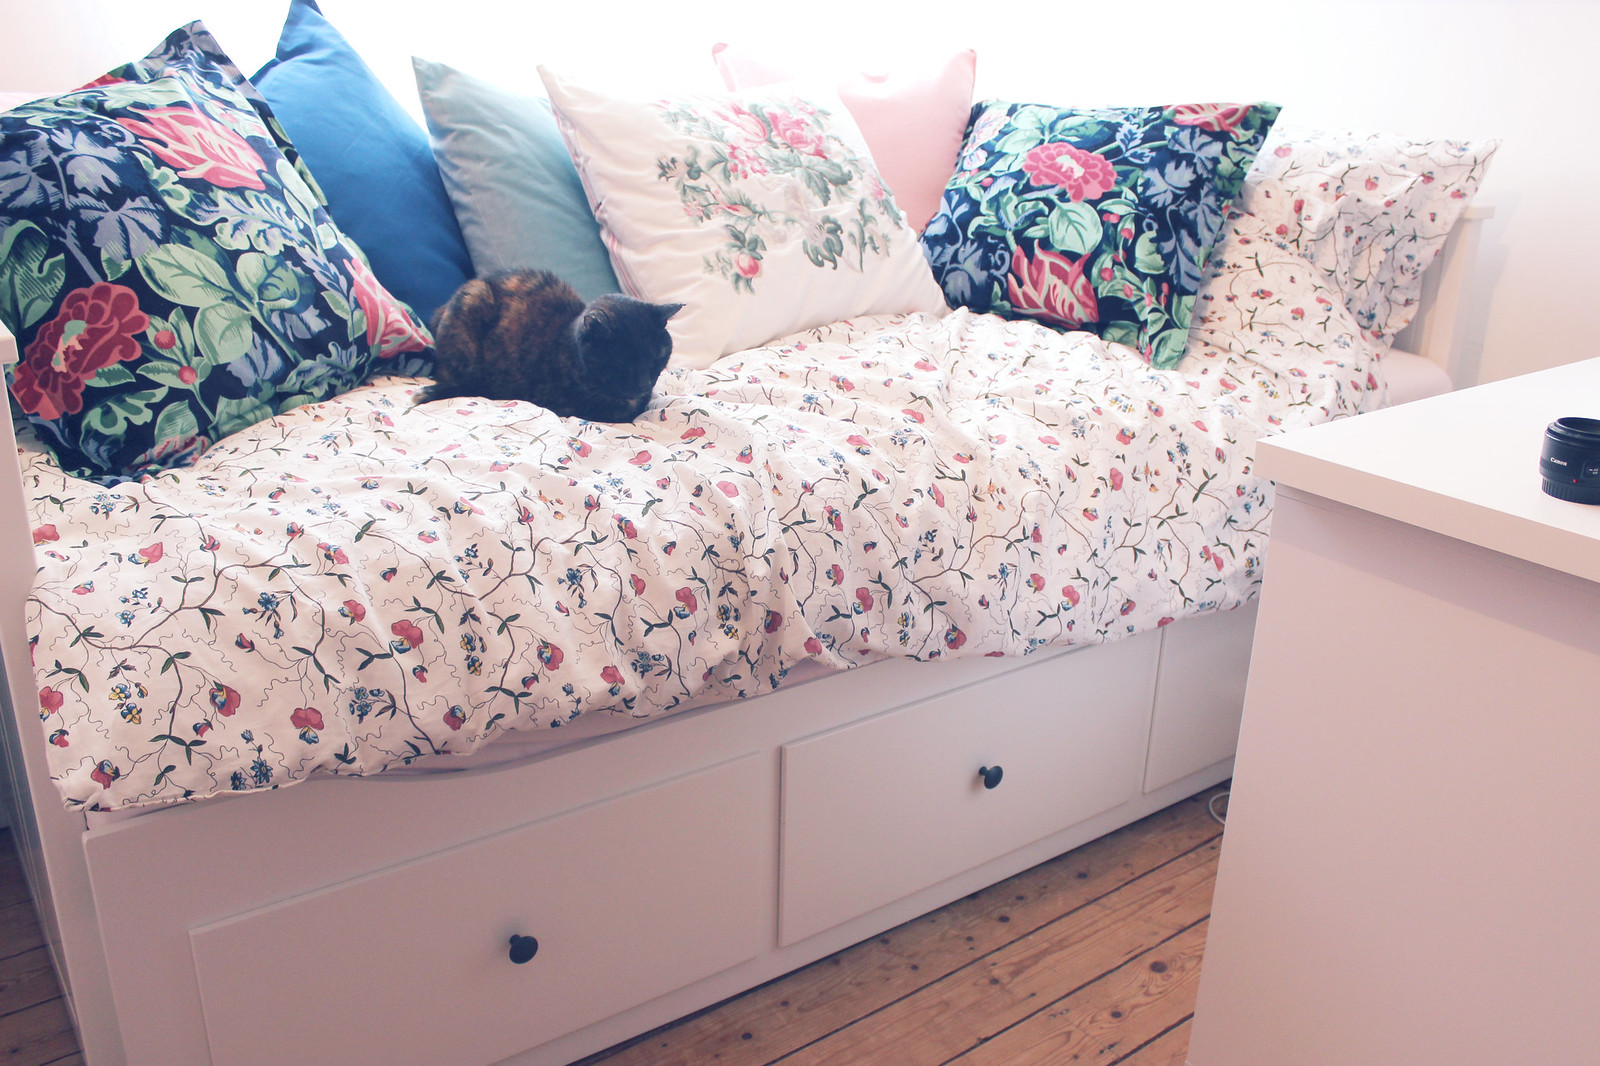 Need To Buy A Bed Excellent Wooden Street Wooden Furniture Store U Intelligent Points To With